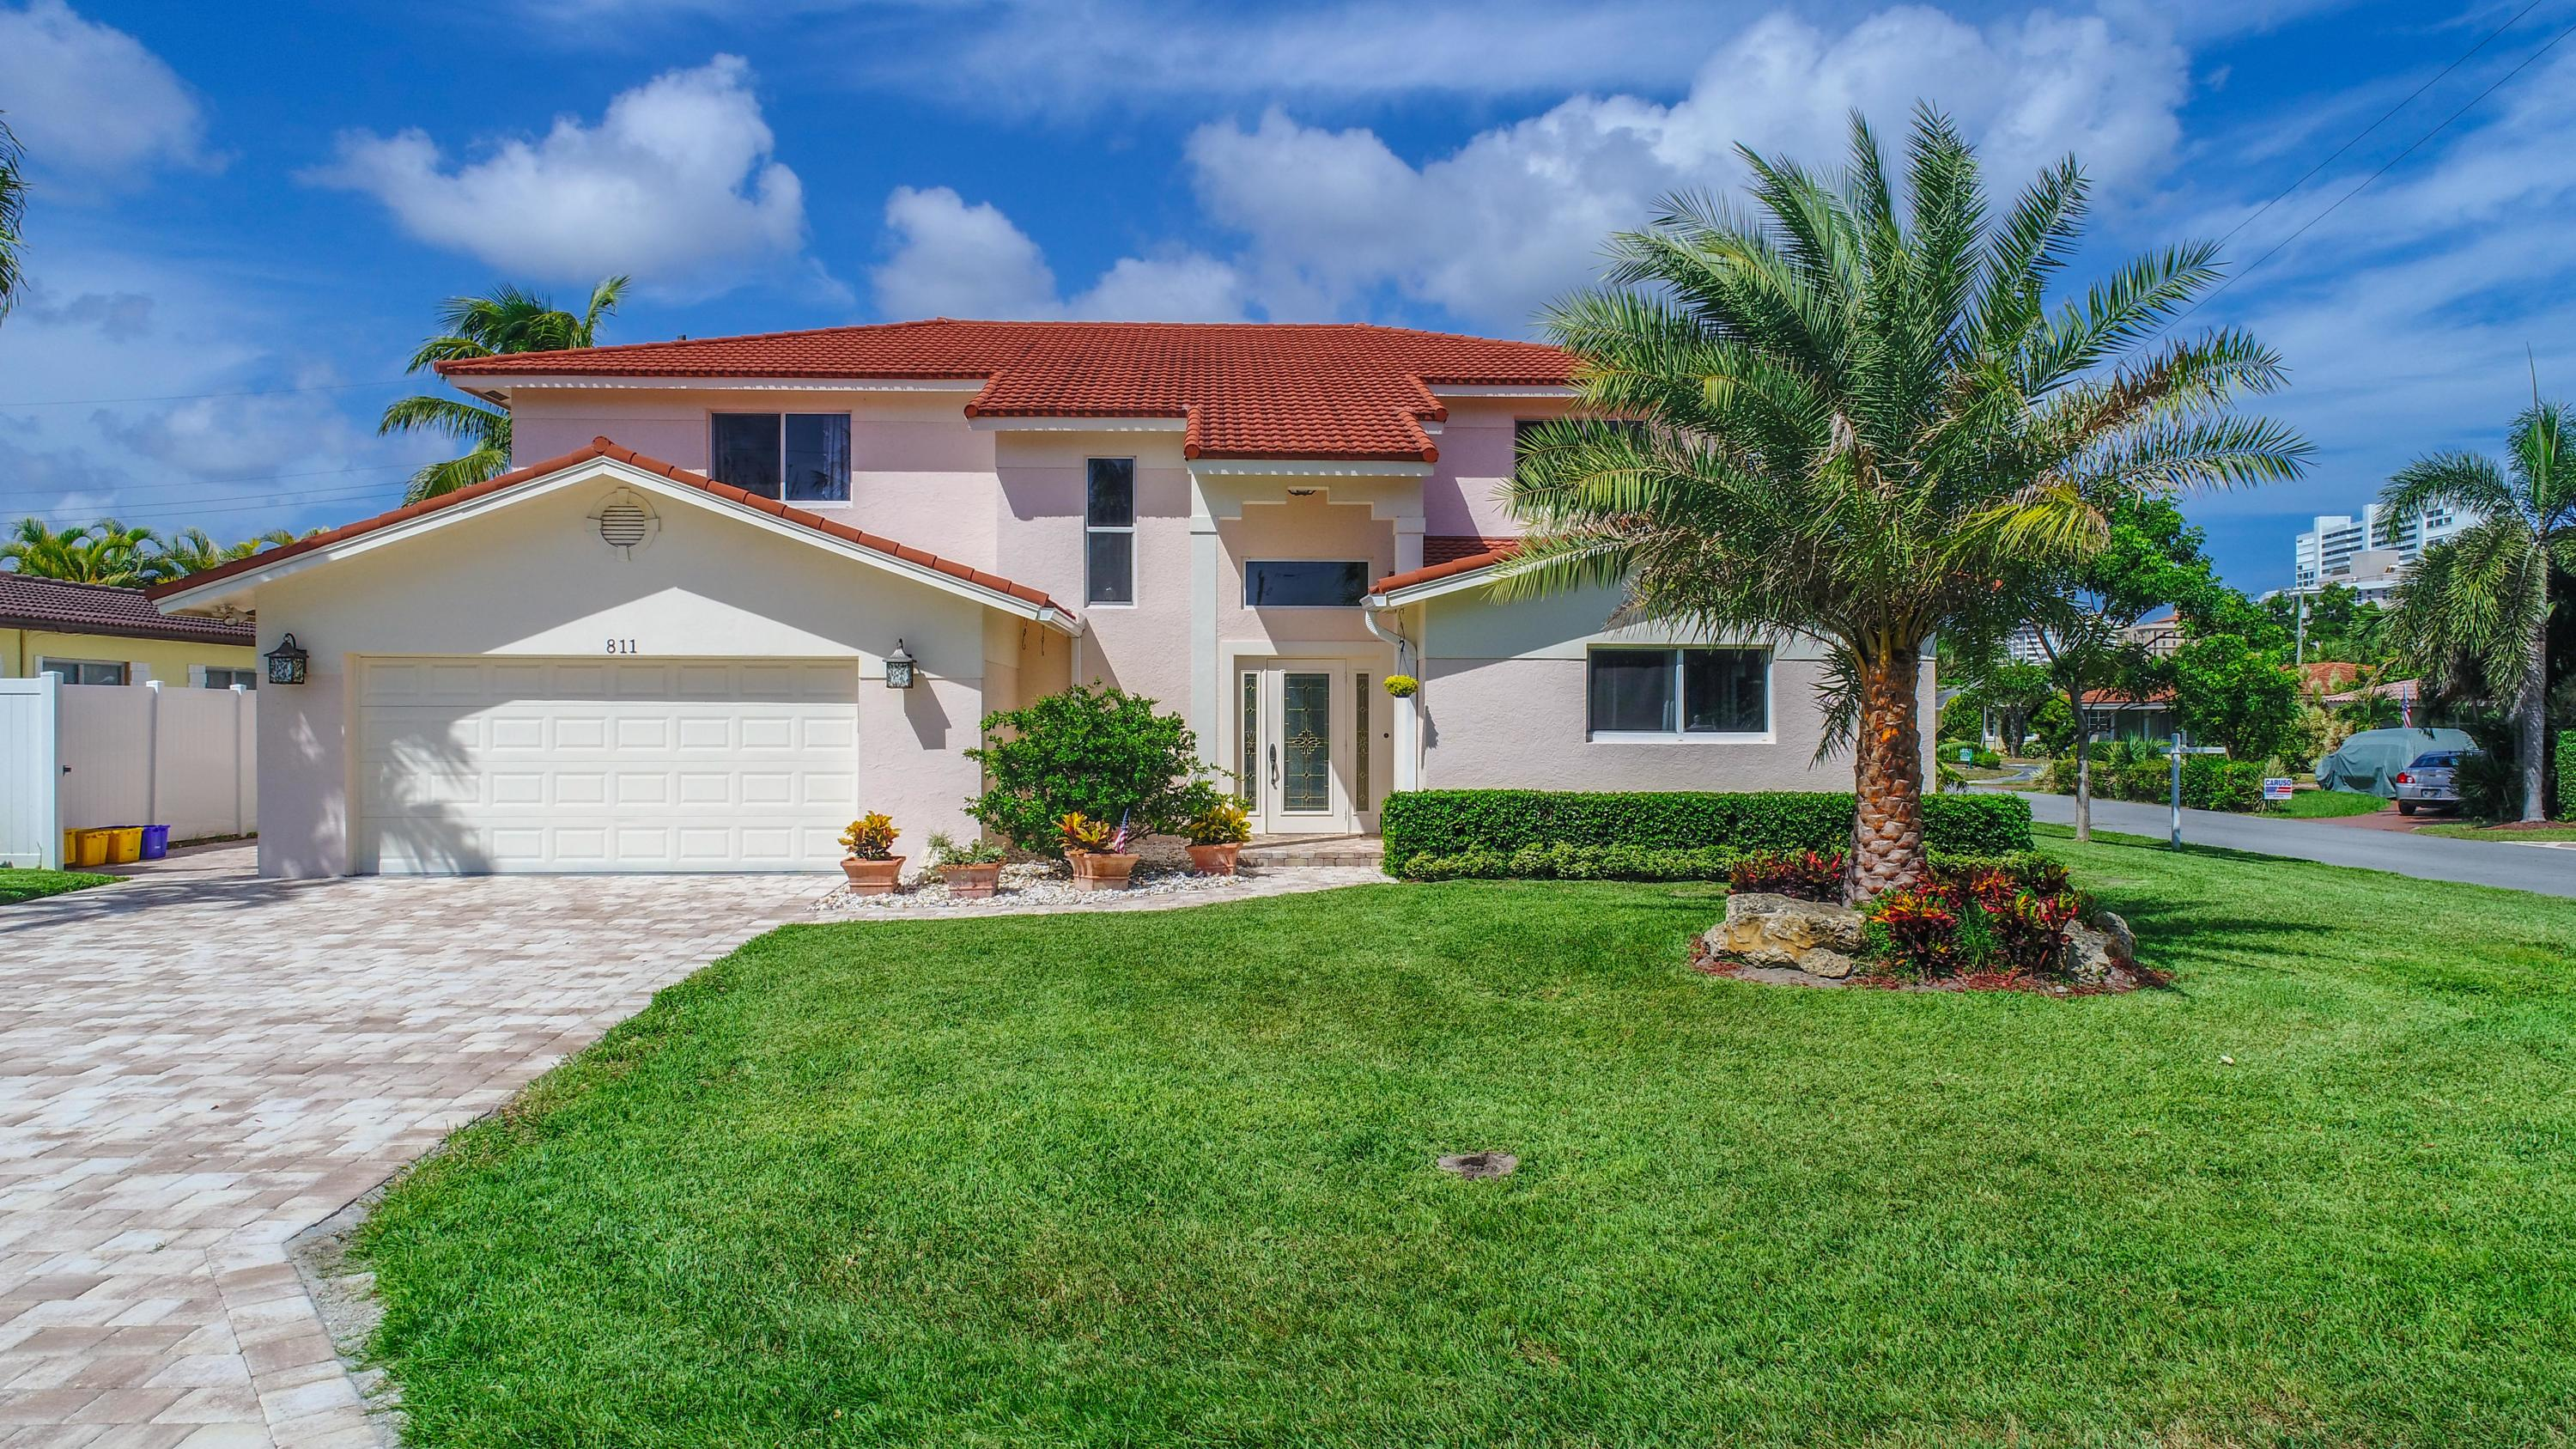 811 31st Street, Boca Raton, Florida 33432, 6 Bedrooms Bedrooms, ,5 BathroomsBathrooms,Single Family,For Sale,31st,RX-10471561